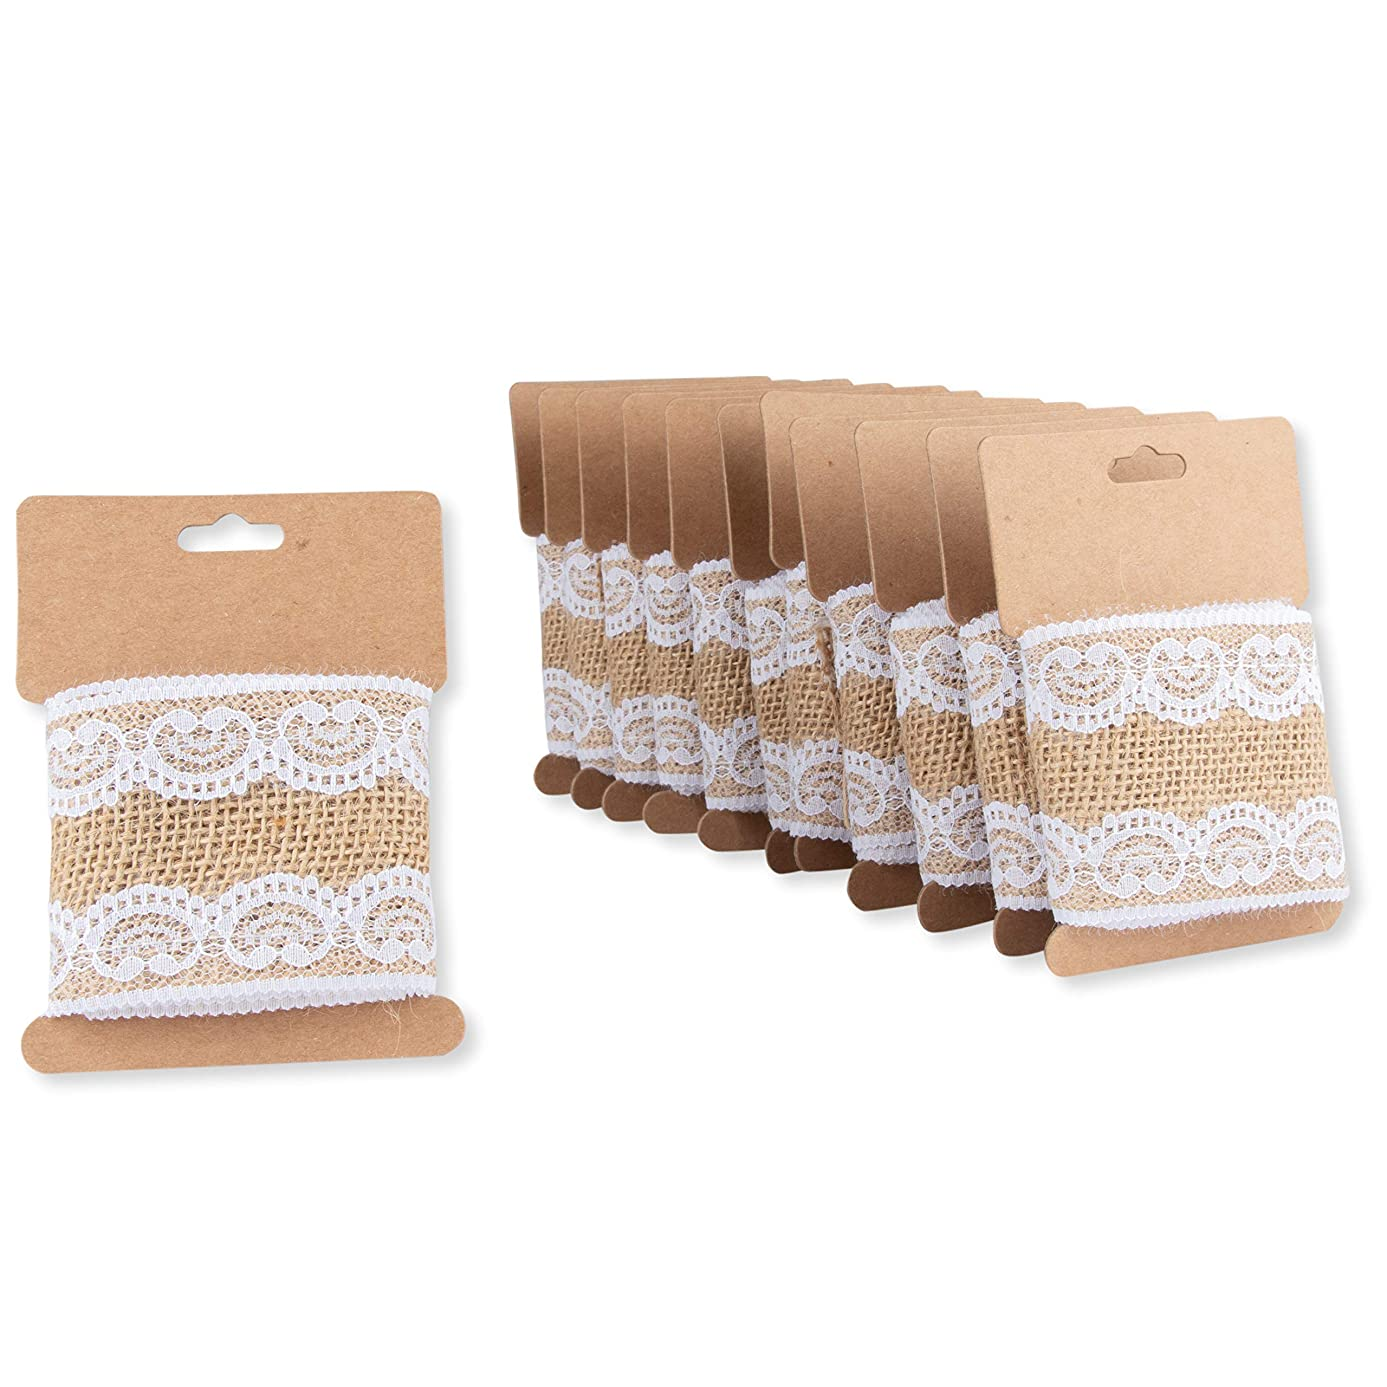 Burlap Fabric Roll - 12-Pack 2.44-Inch Brown Burlap Ribbon with White Laces for Crafts, 1.09 Yards Each